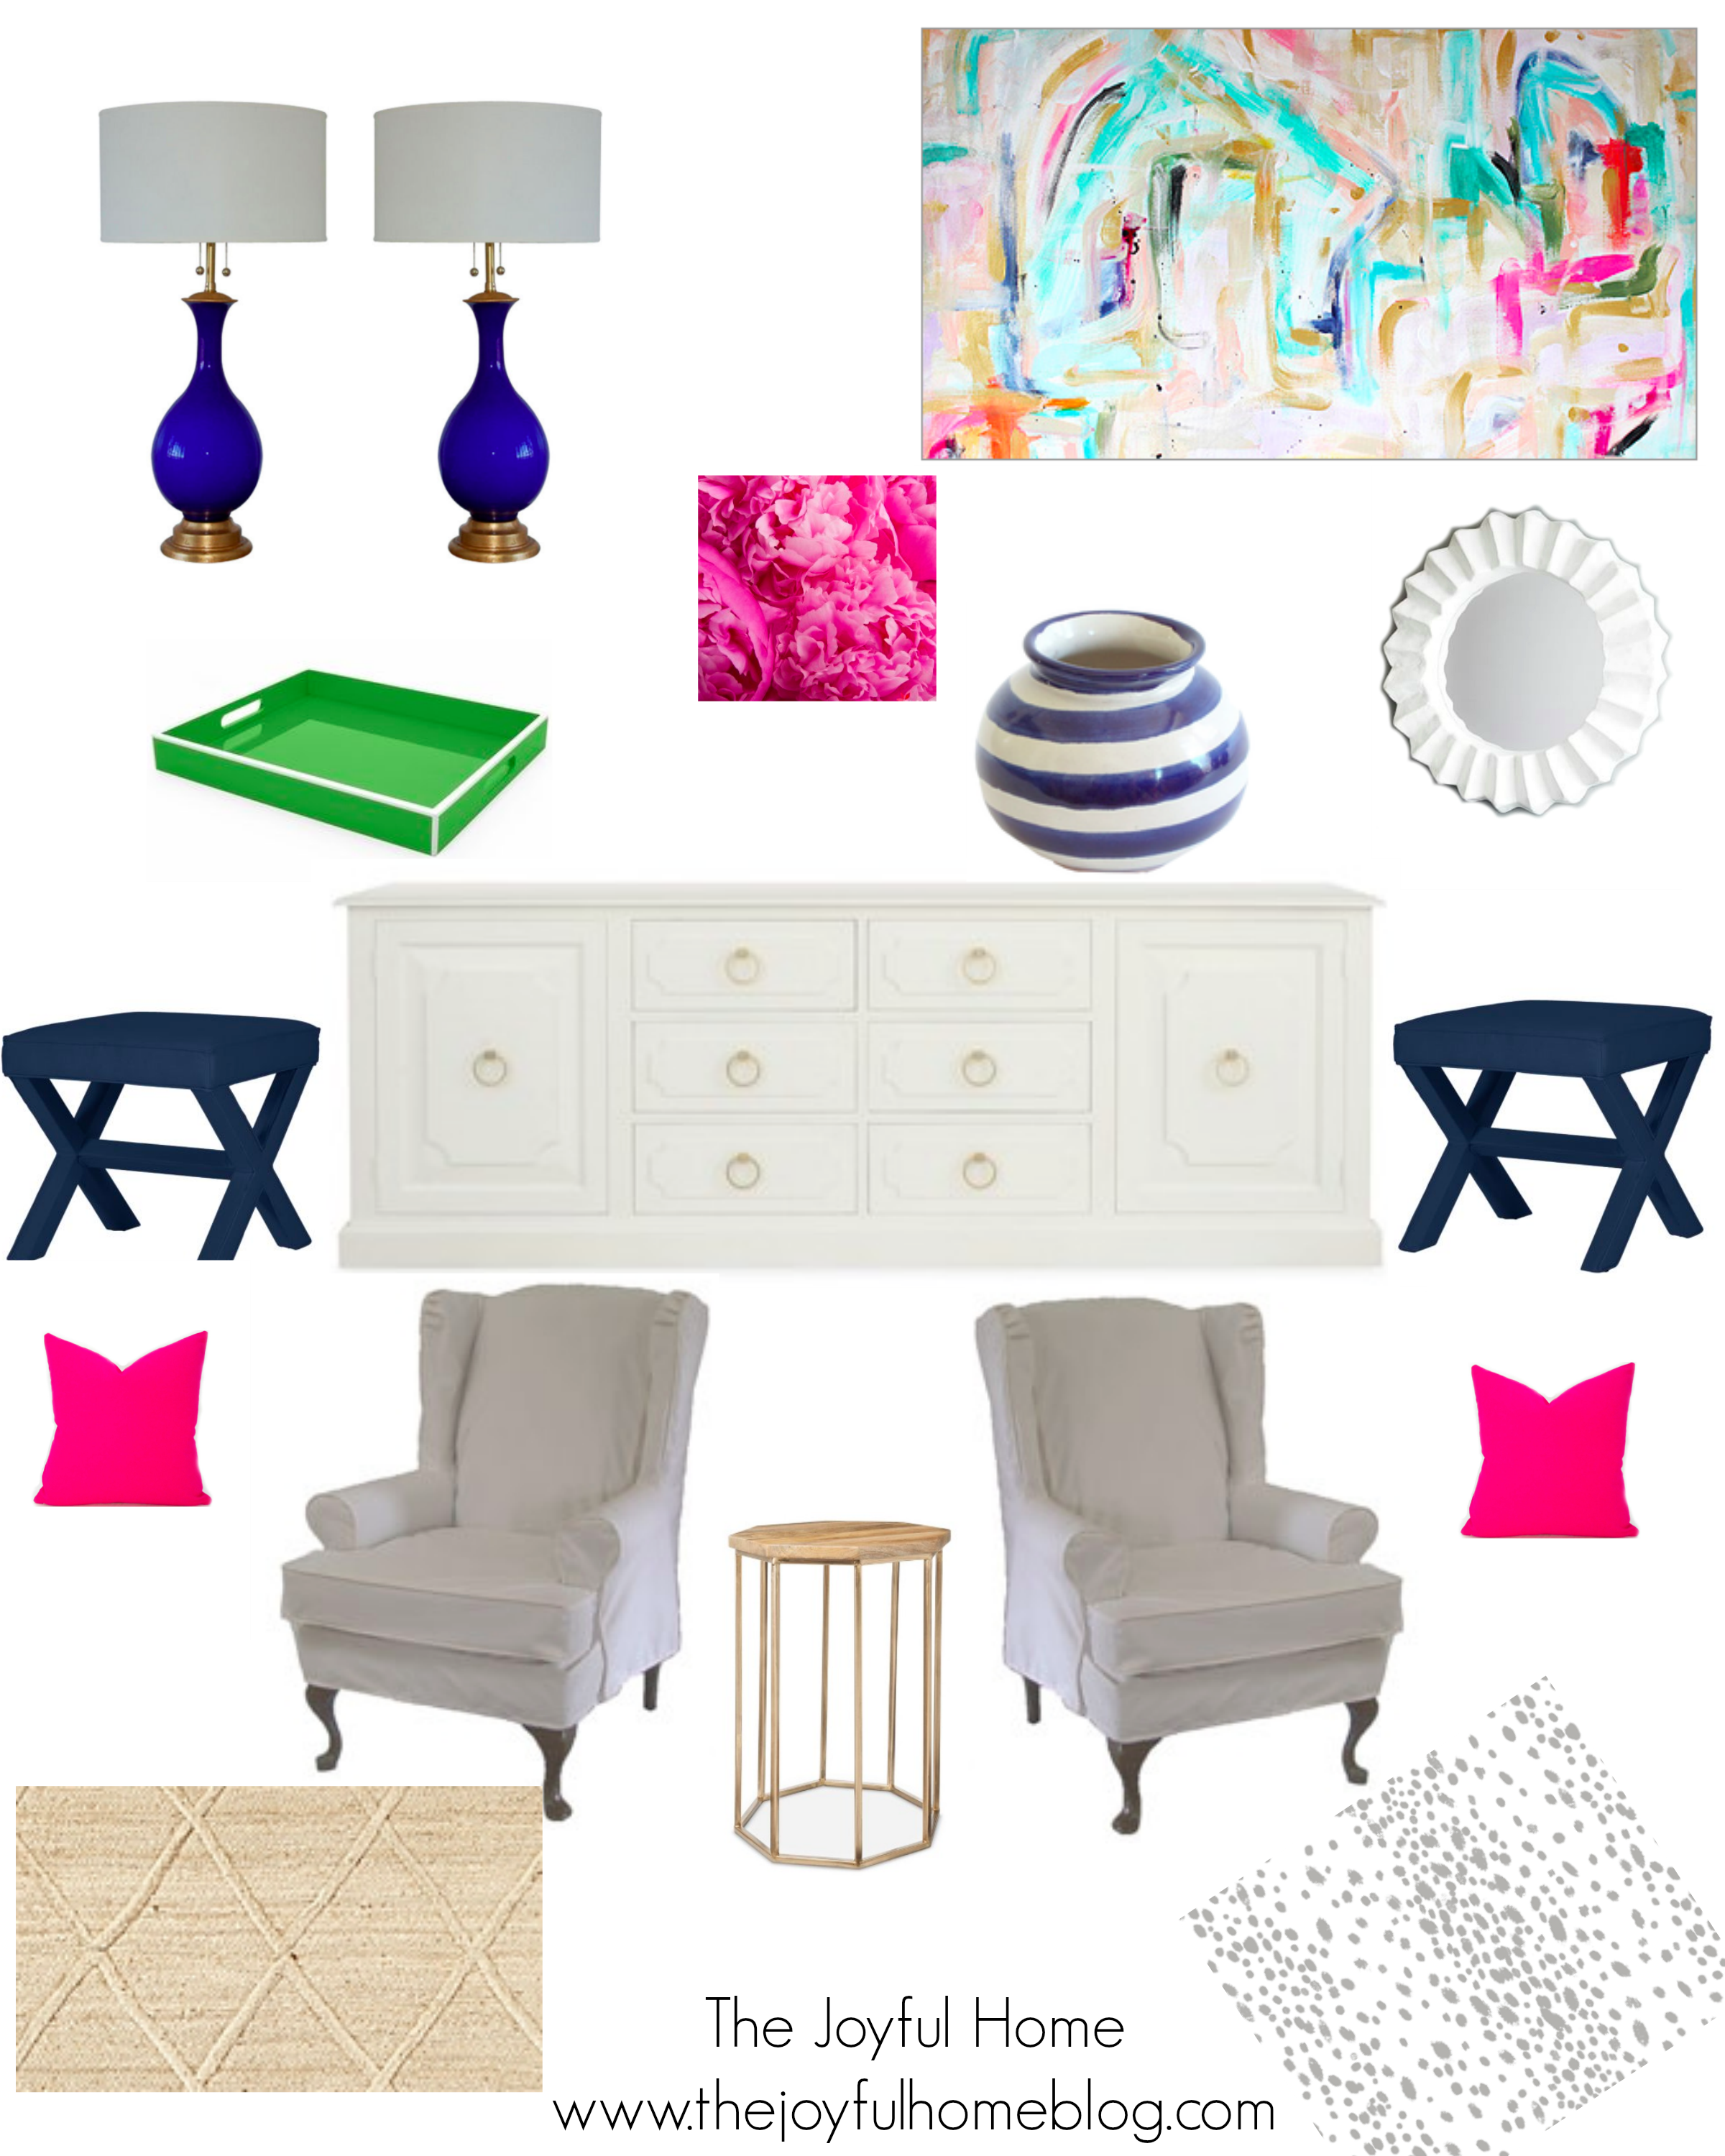 Furniture clipart living room. Classic and fun formal